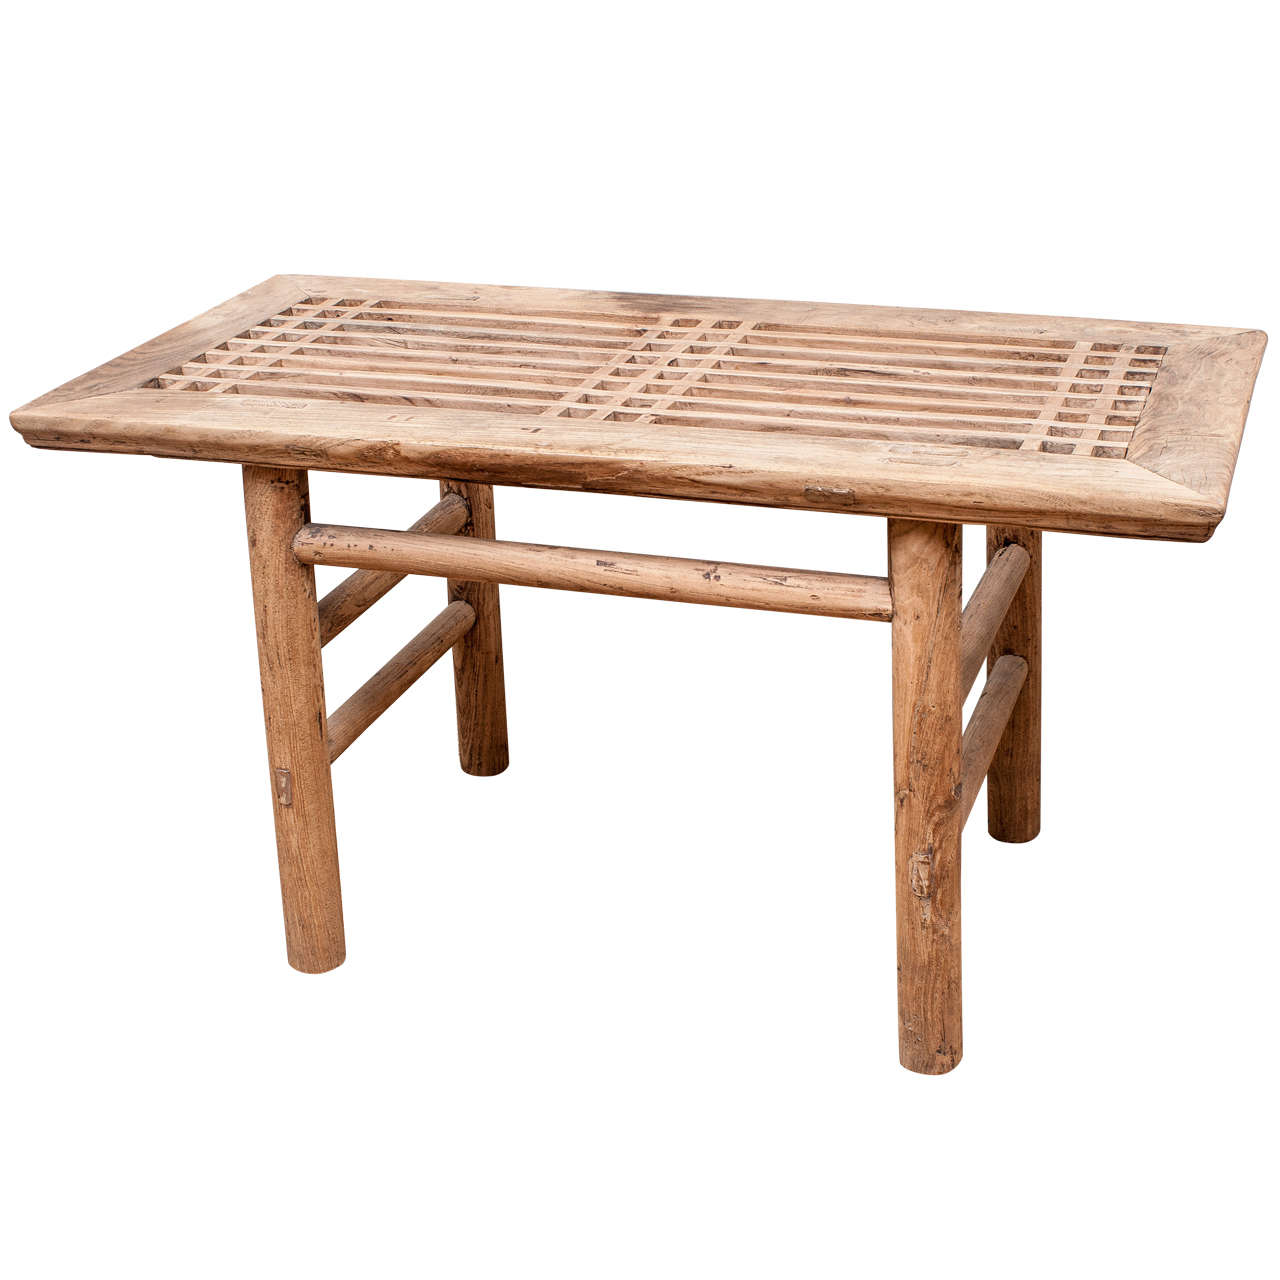 Bleached Lattice Top Low Table At 1stdibs